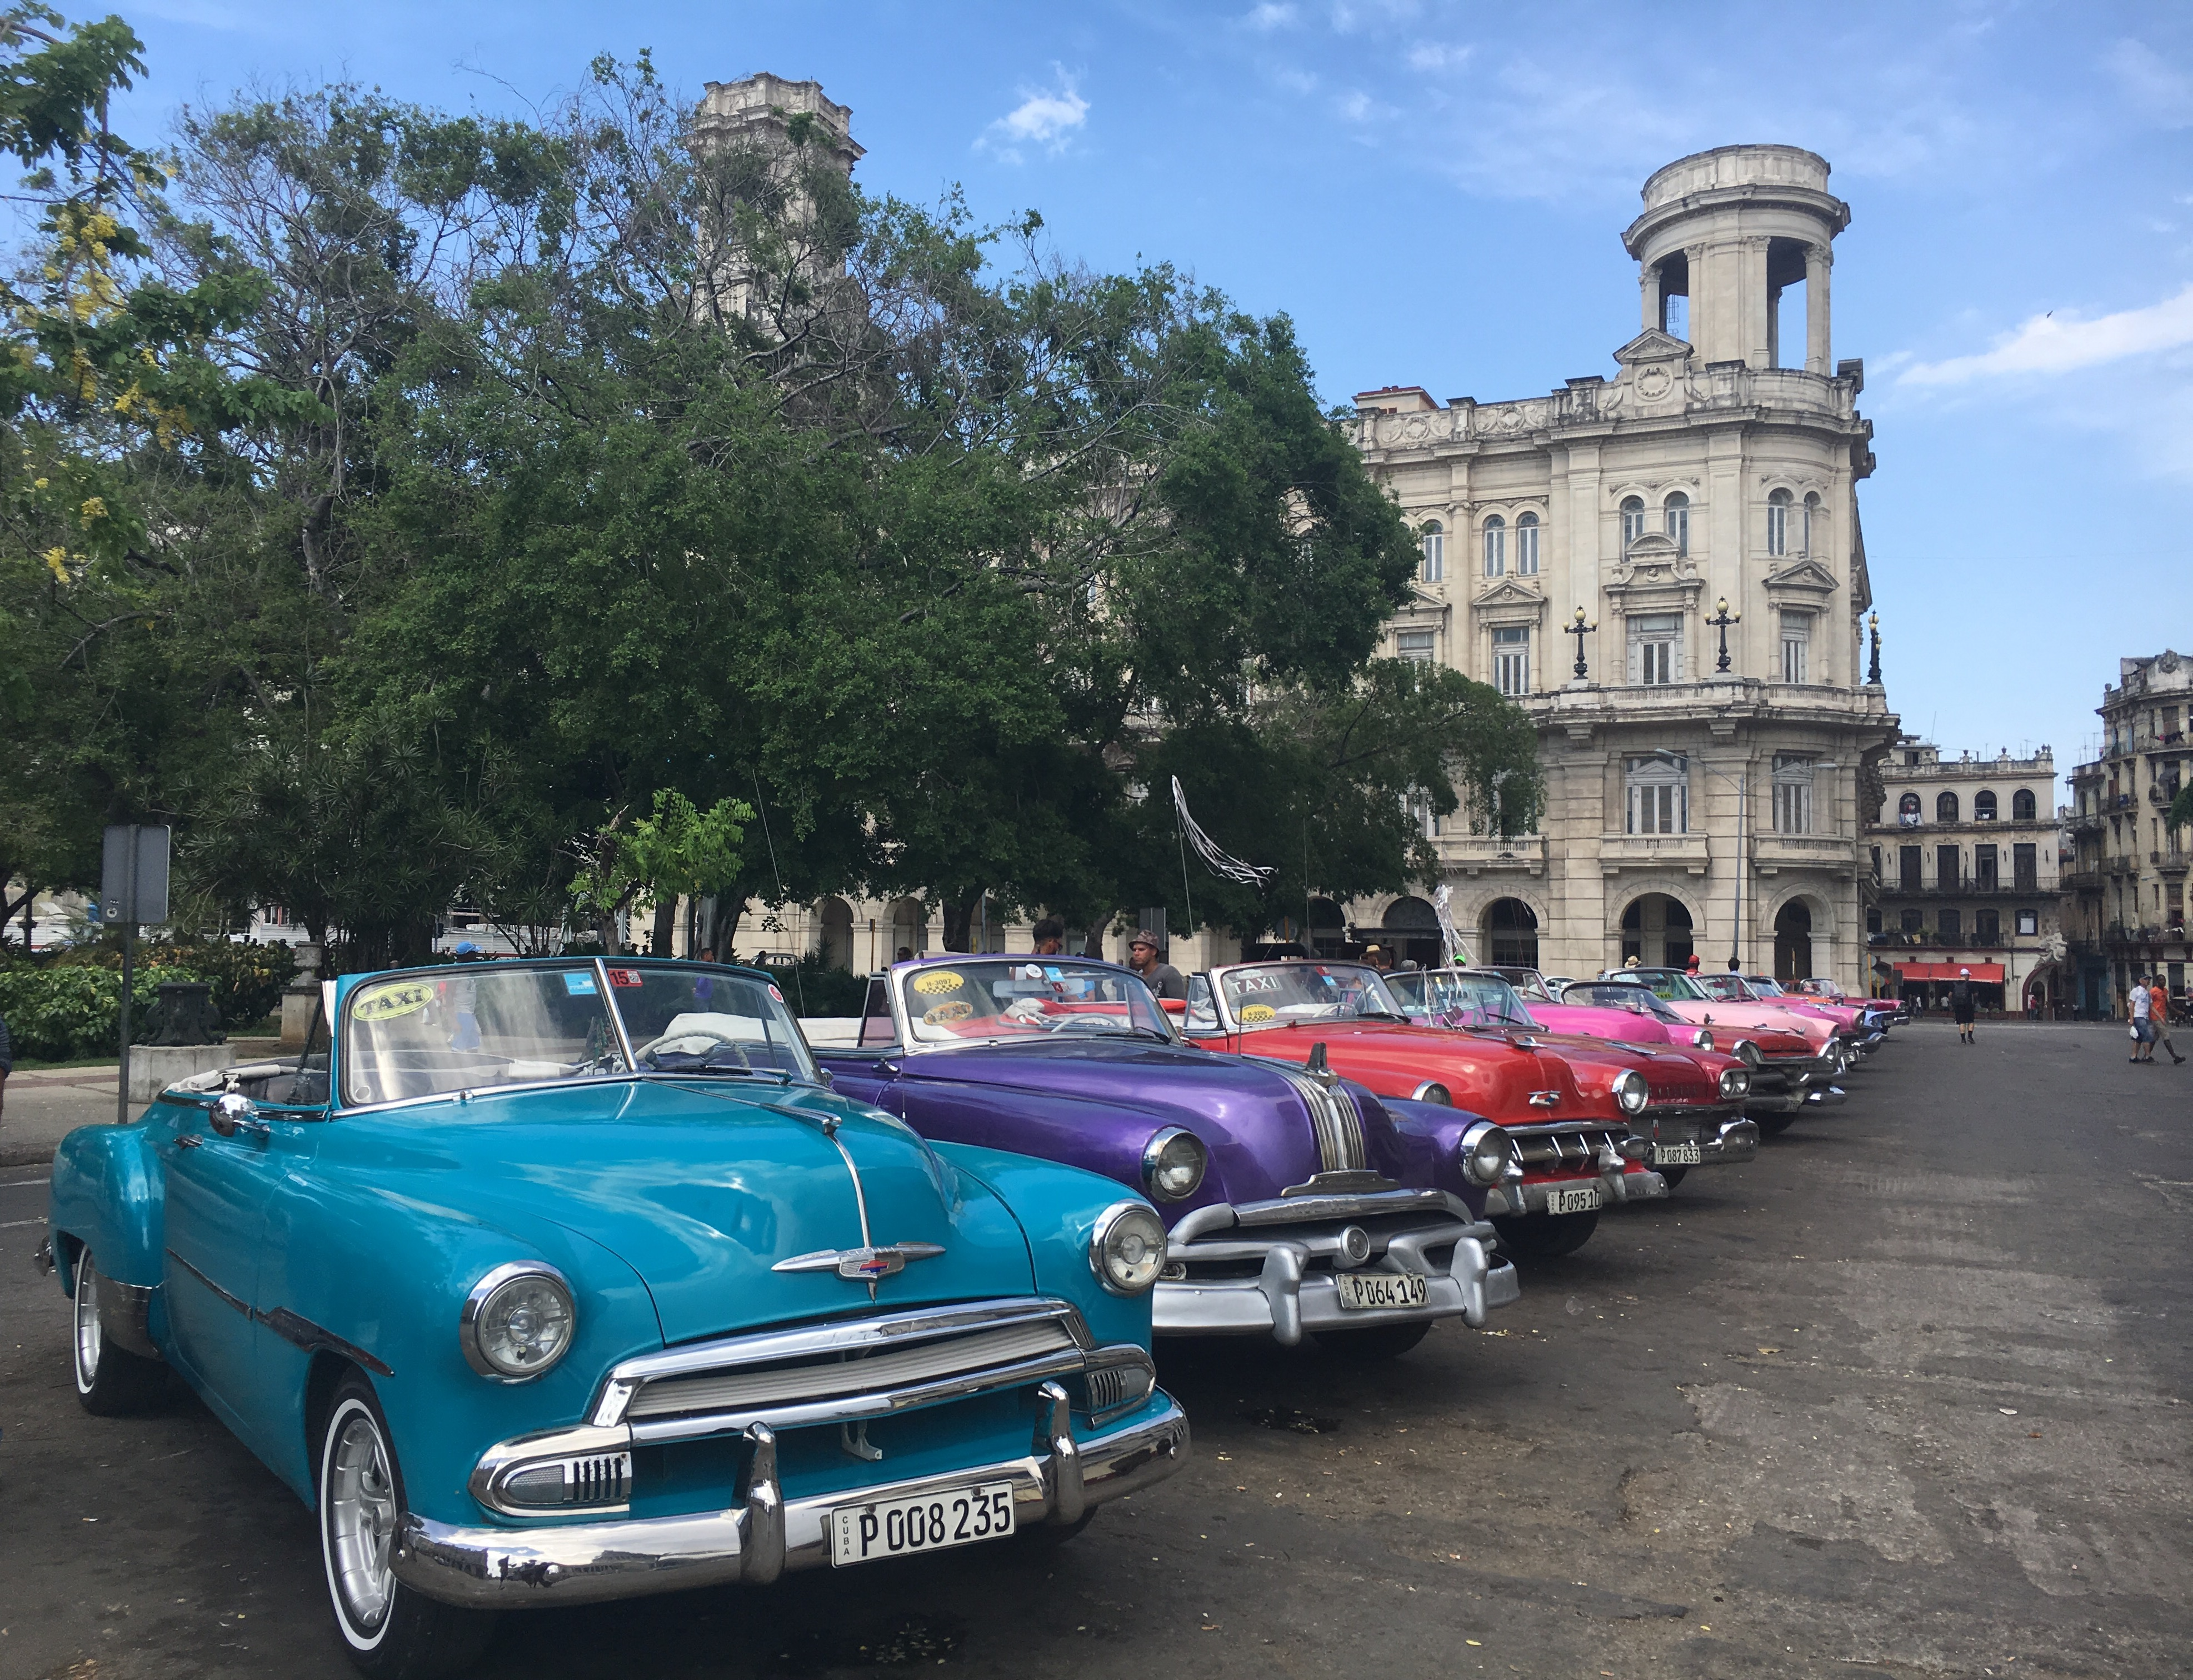 FROM PRESENT TO PAST: LET'S GO TO CUBA!